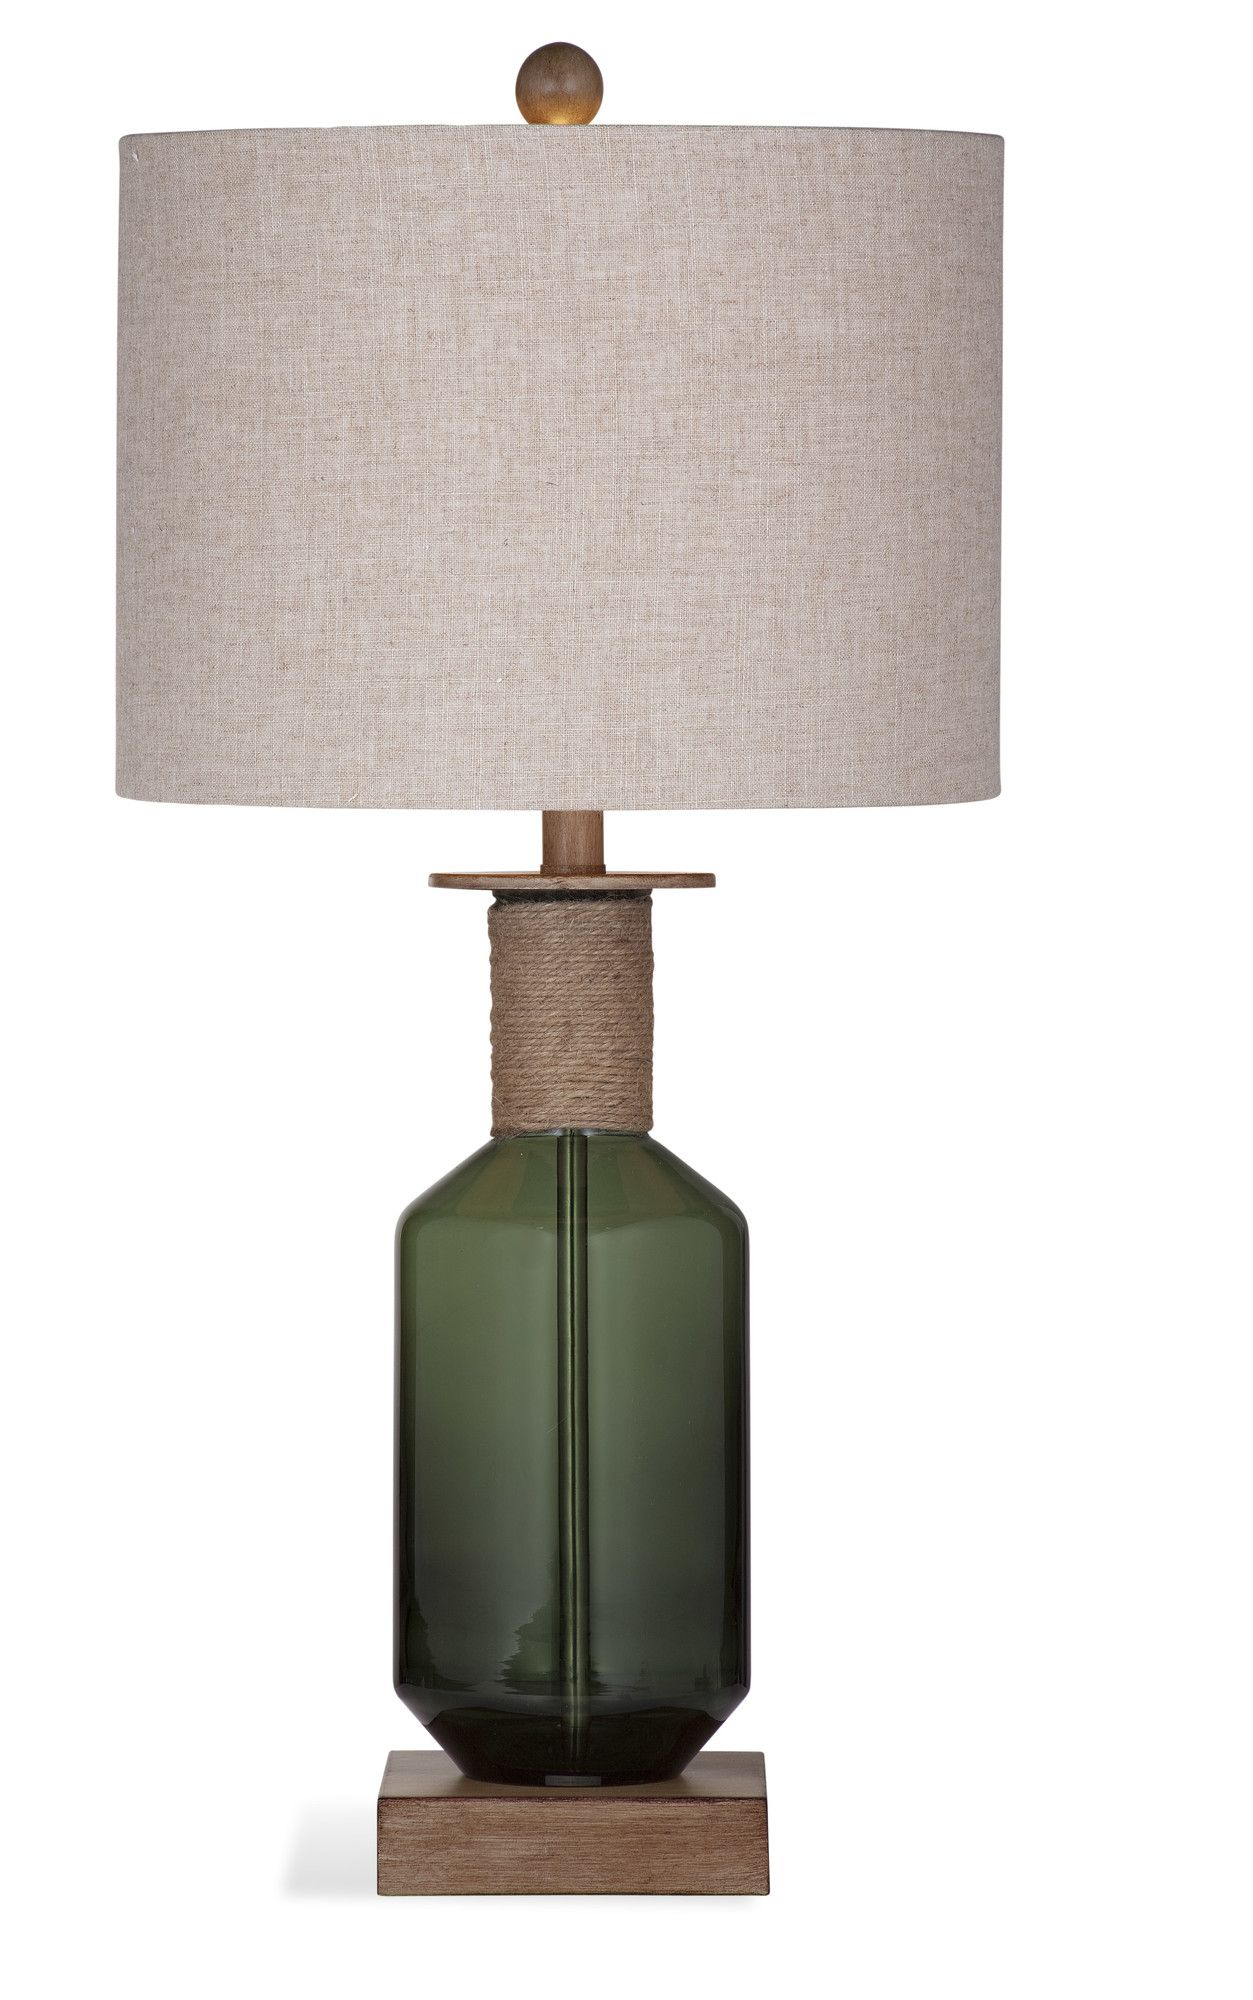 Bladen table lamp products pinterest products bladen table lamp geotapseo Gallery